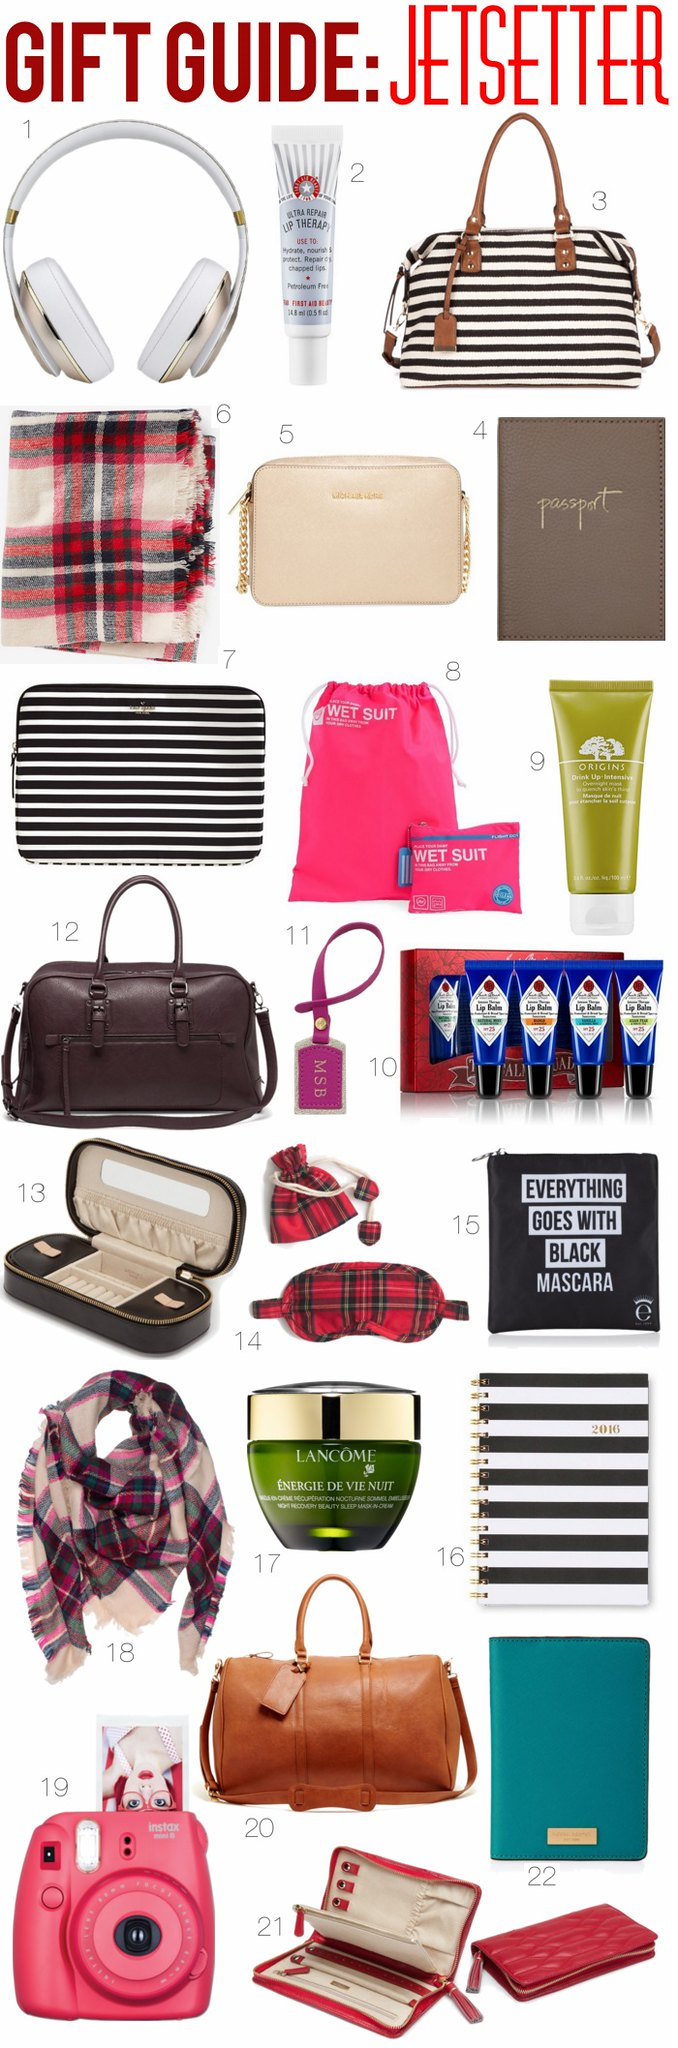 Holiday Gift Guide: Jetsetter